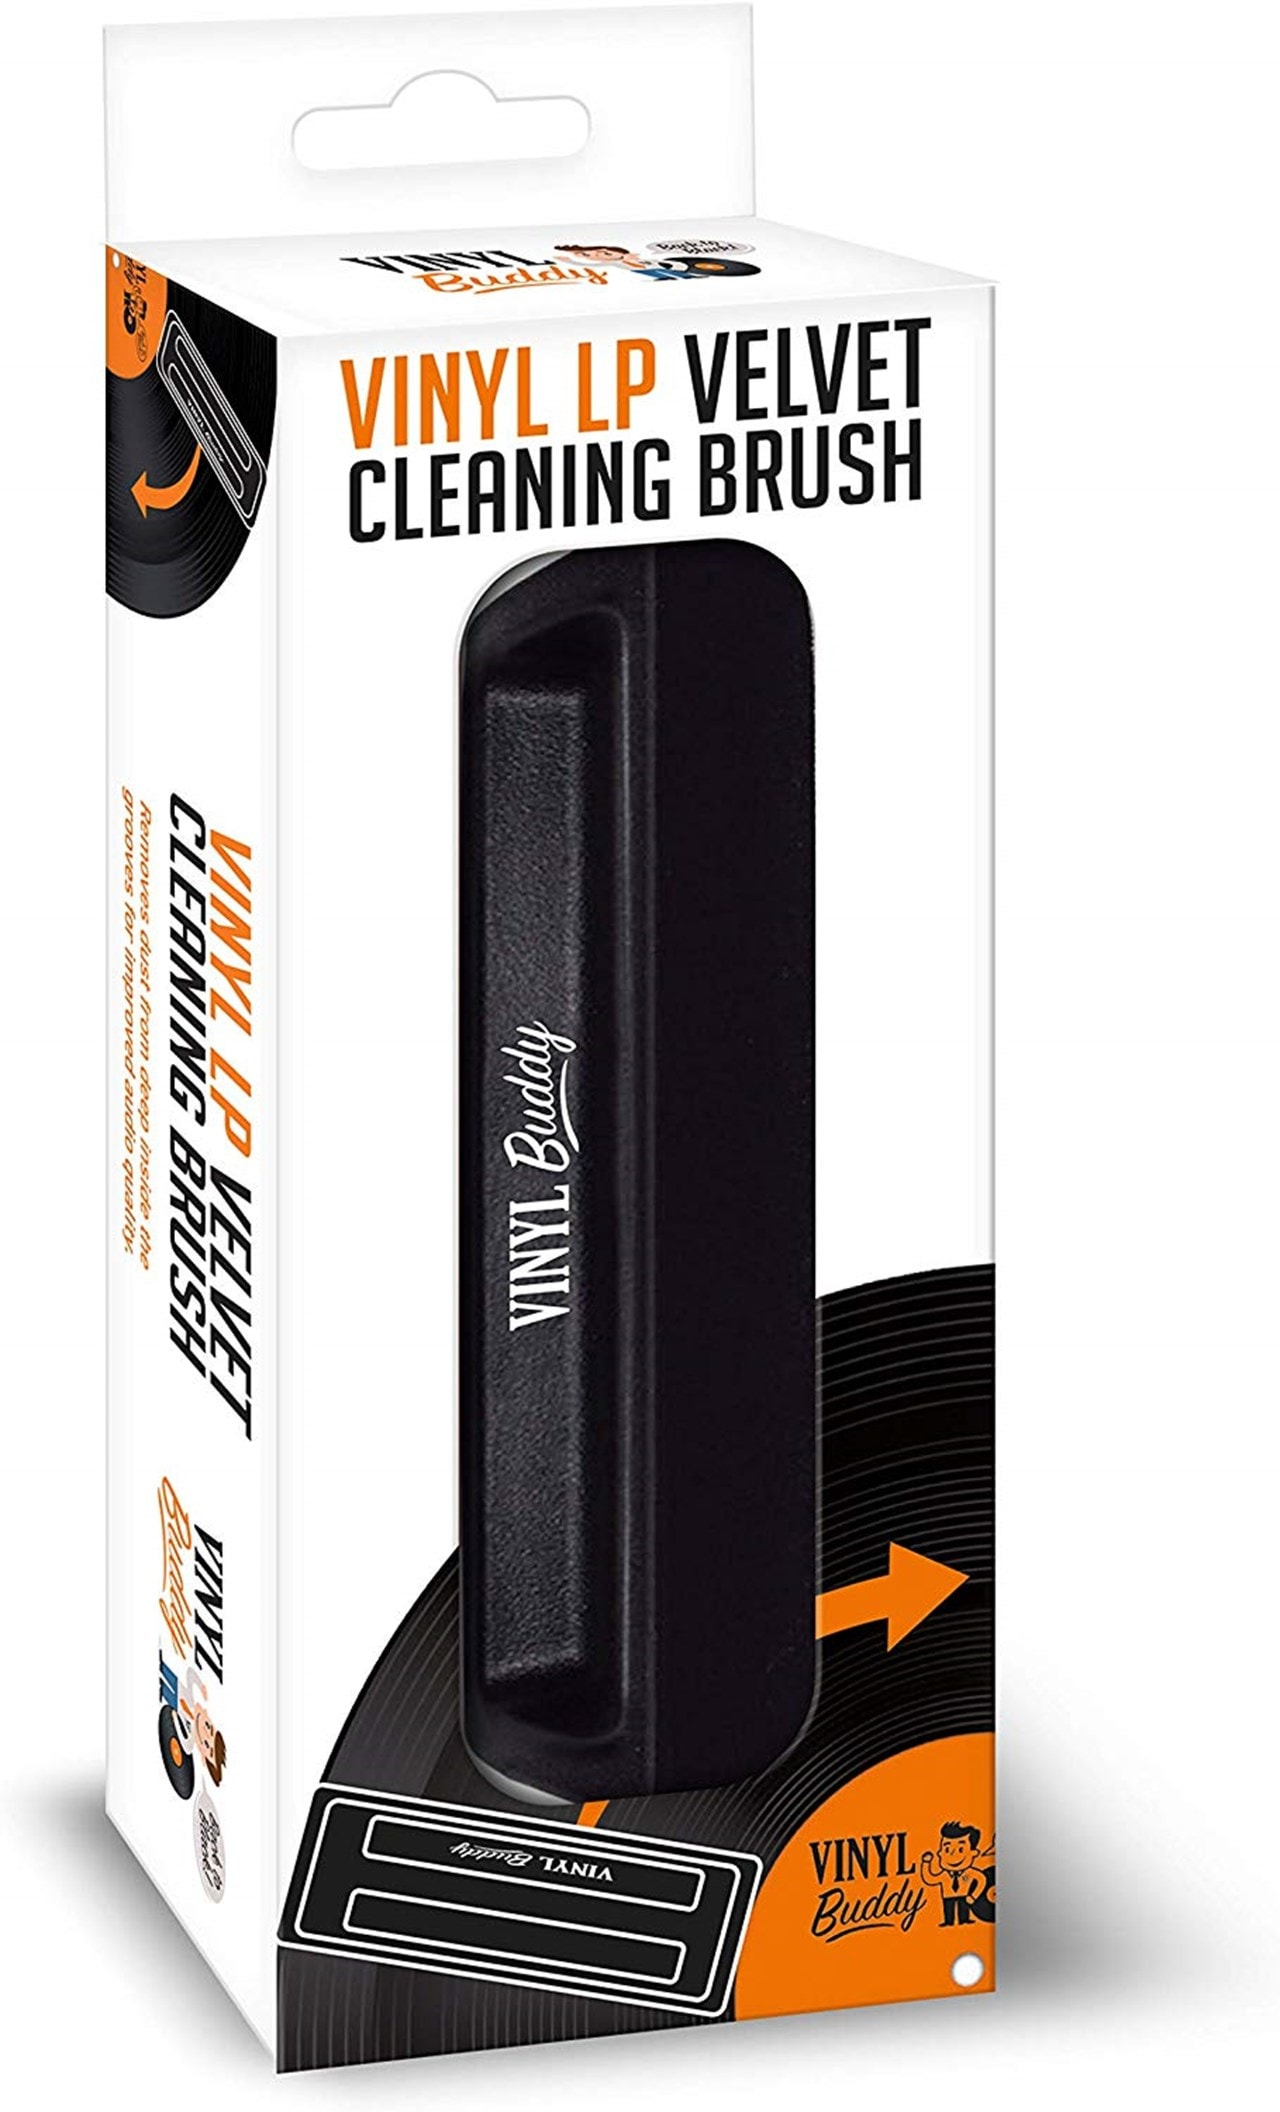 Vinyl Buddy Velvet LP Cleaning Brush - 1